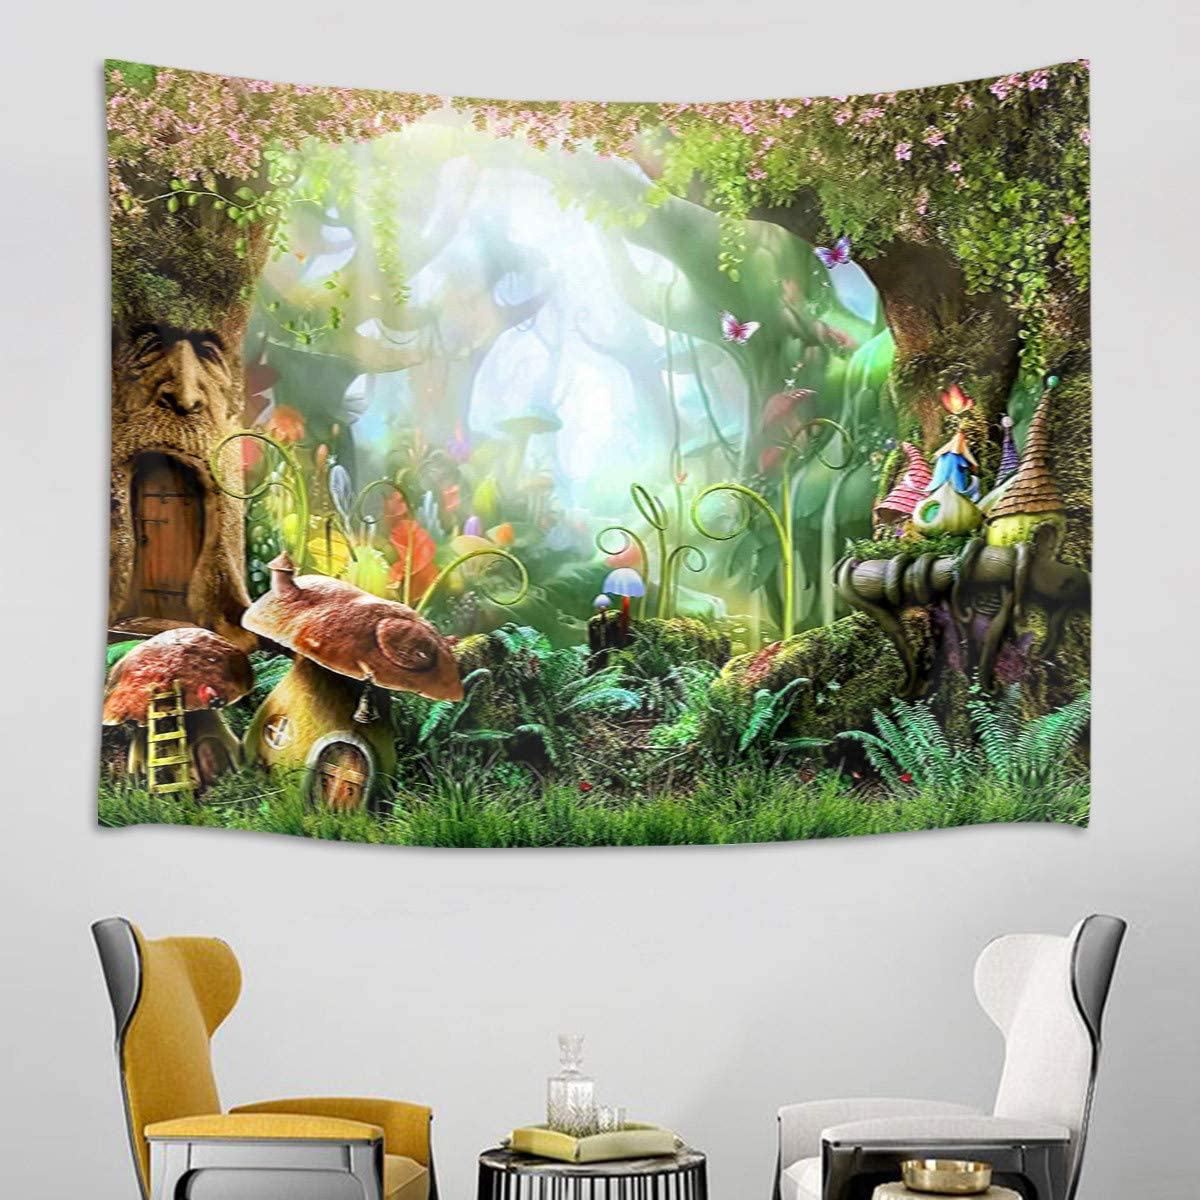 Blended Fabric Spring Party Wall Hangings With Most Popular Hvest Fairy Tale Forest Tapestry Wall Hanging Magic Mushroom And Trees Wall Tapestry Spring Scenery Tapestry For Kids Girls Bedroom Living Room Dorm (View 12 of 20)